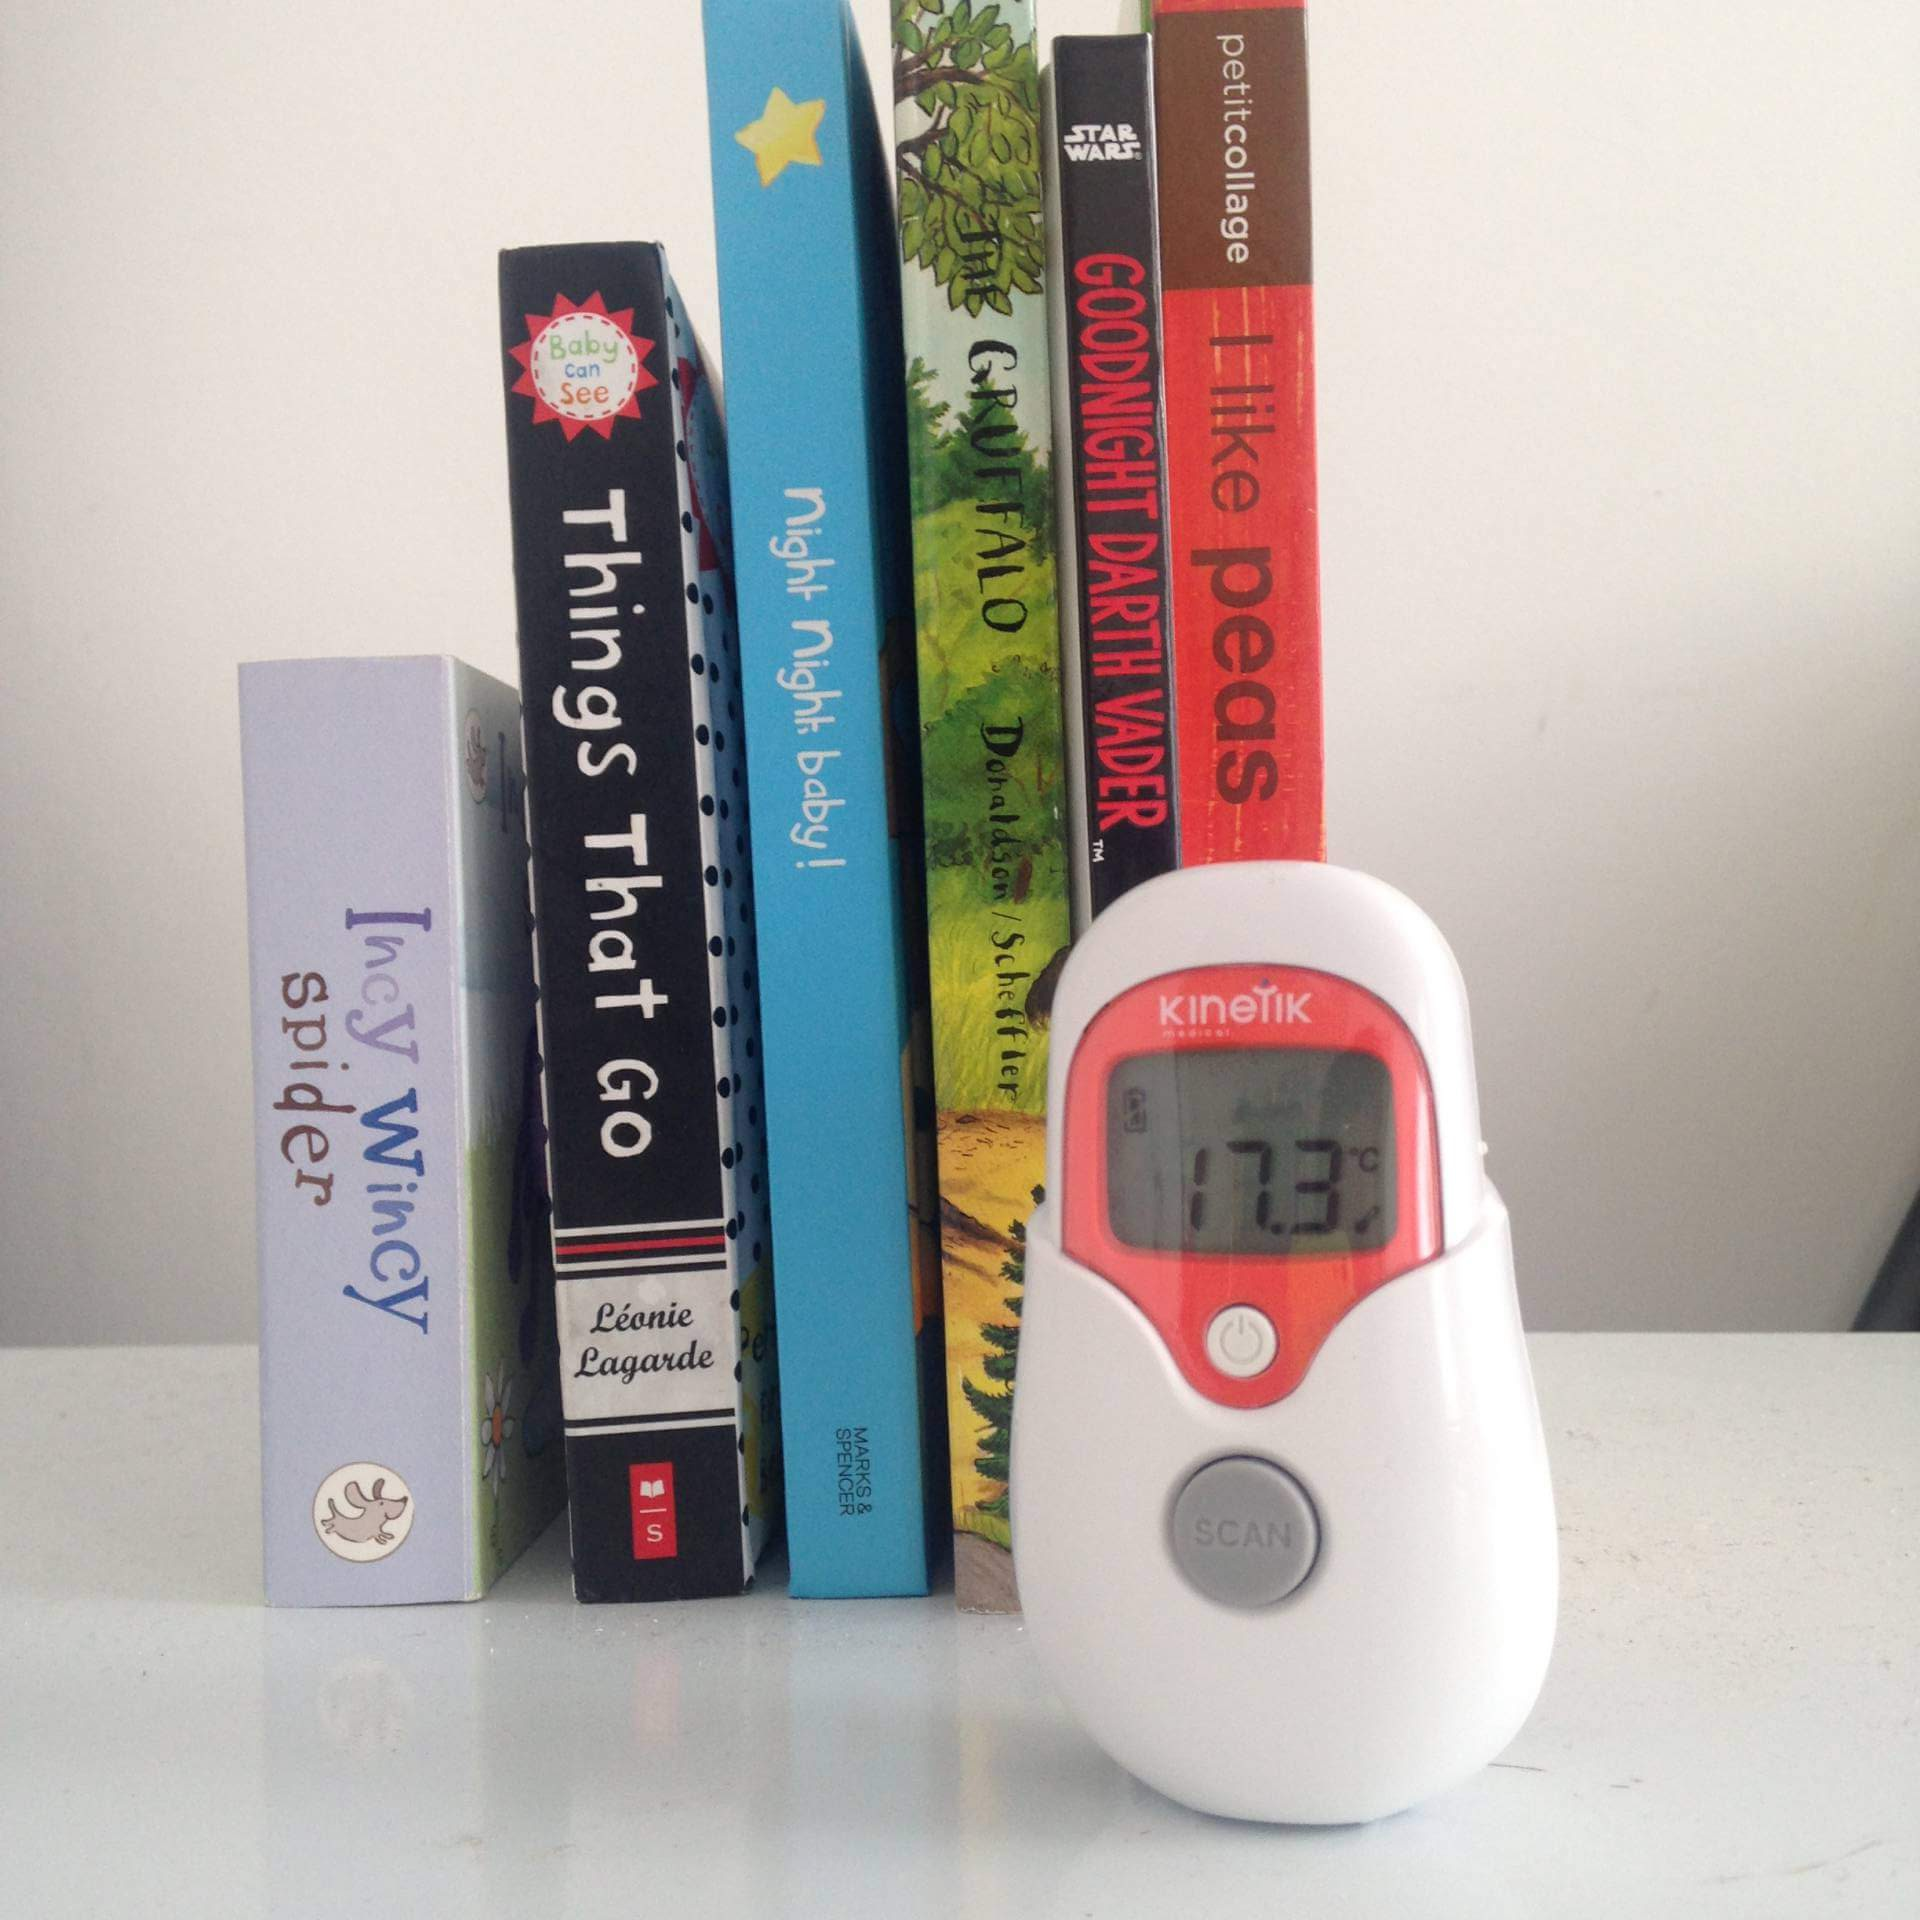 kinetik non-contact thermometer review